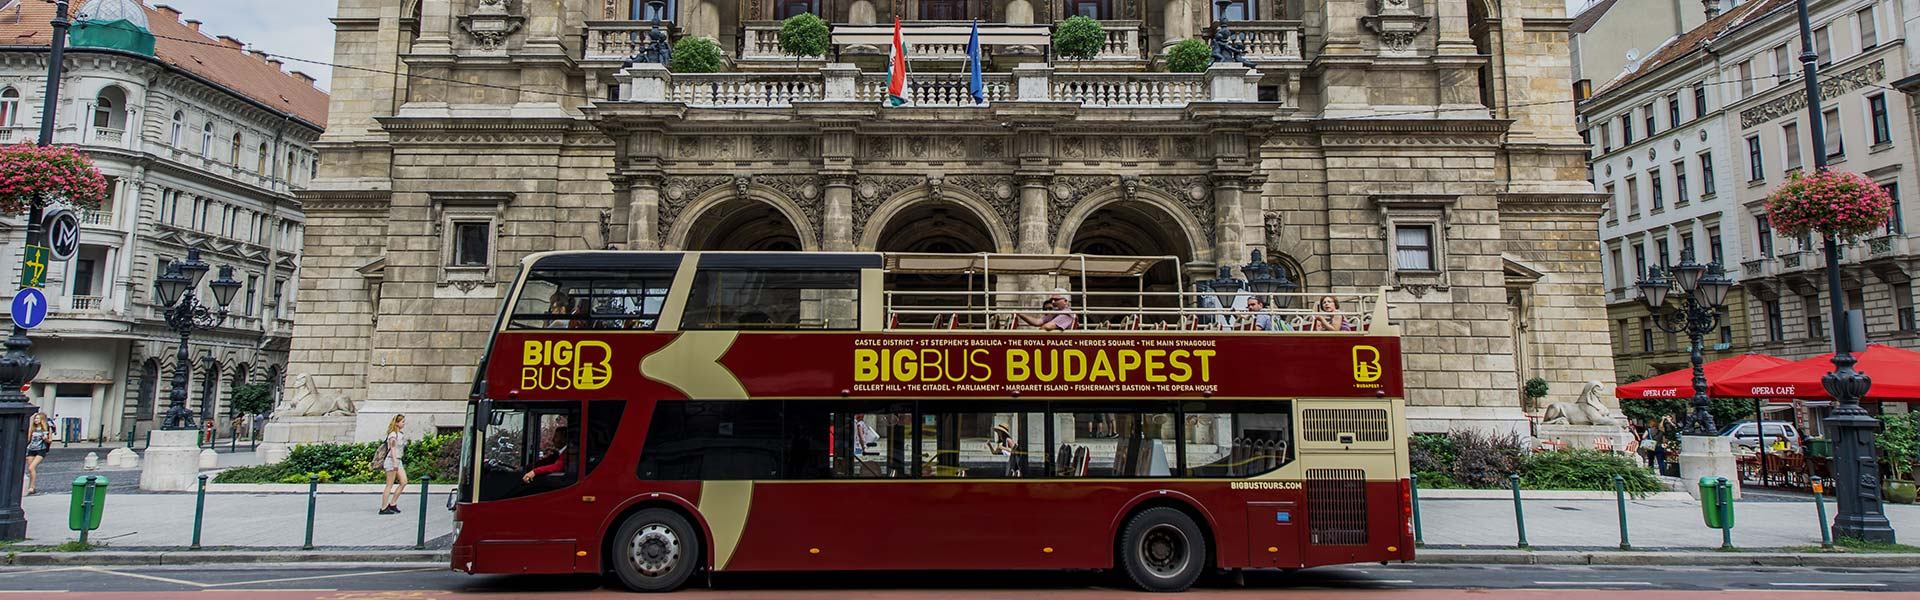 Man listening to commentary on a bus in Budapest